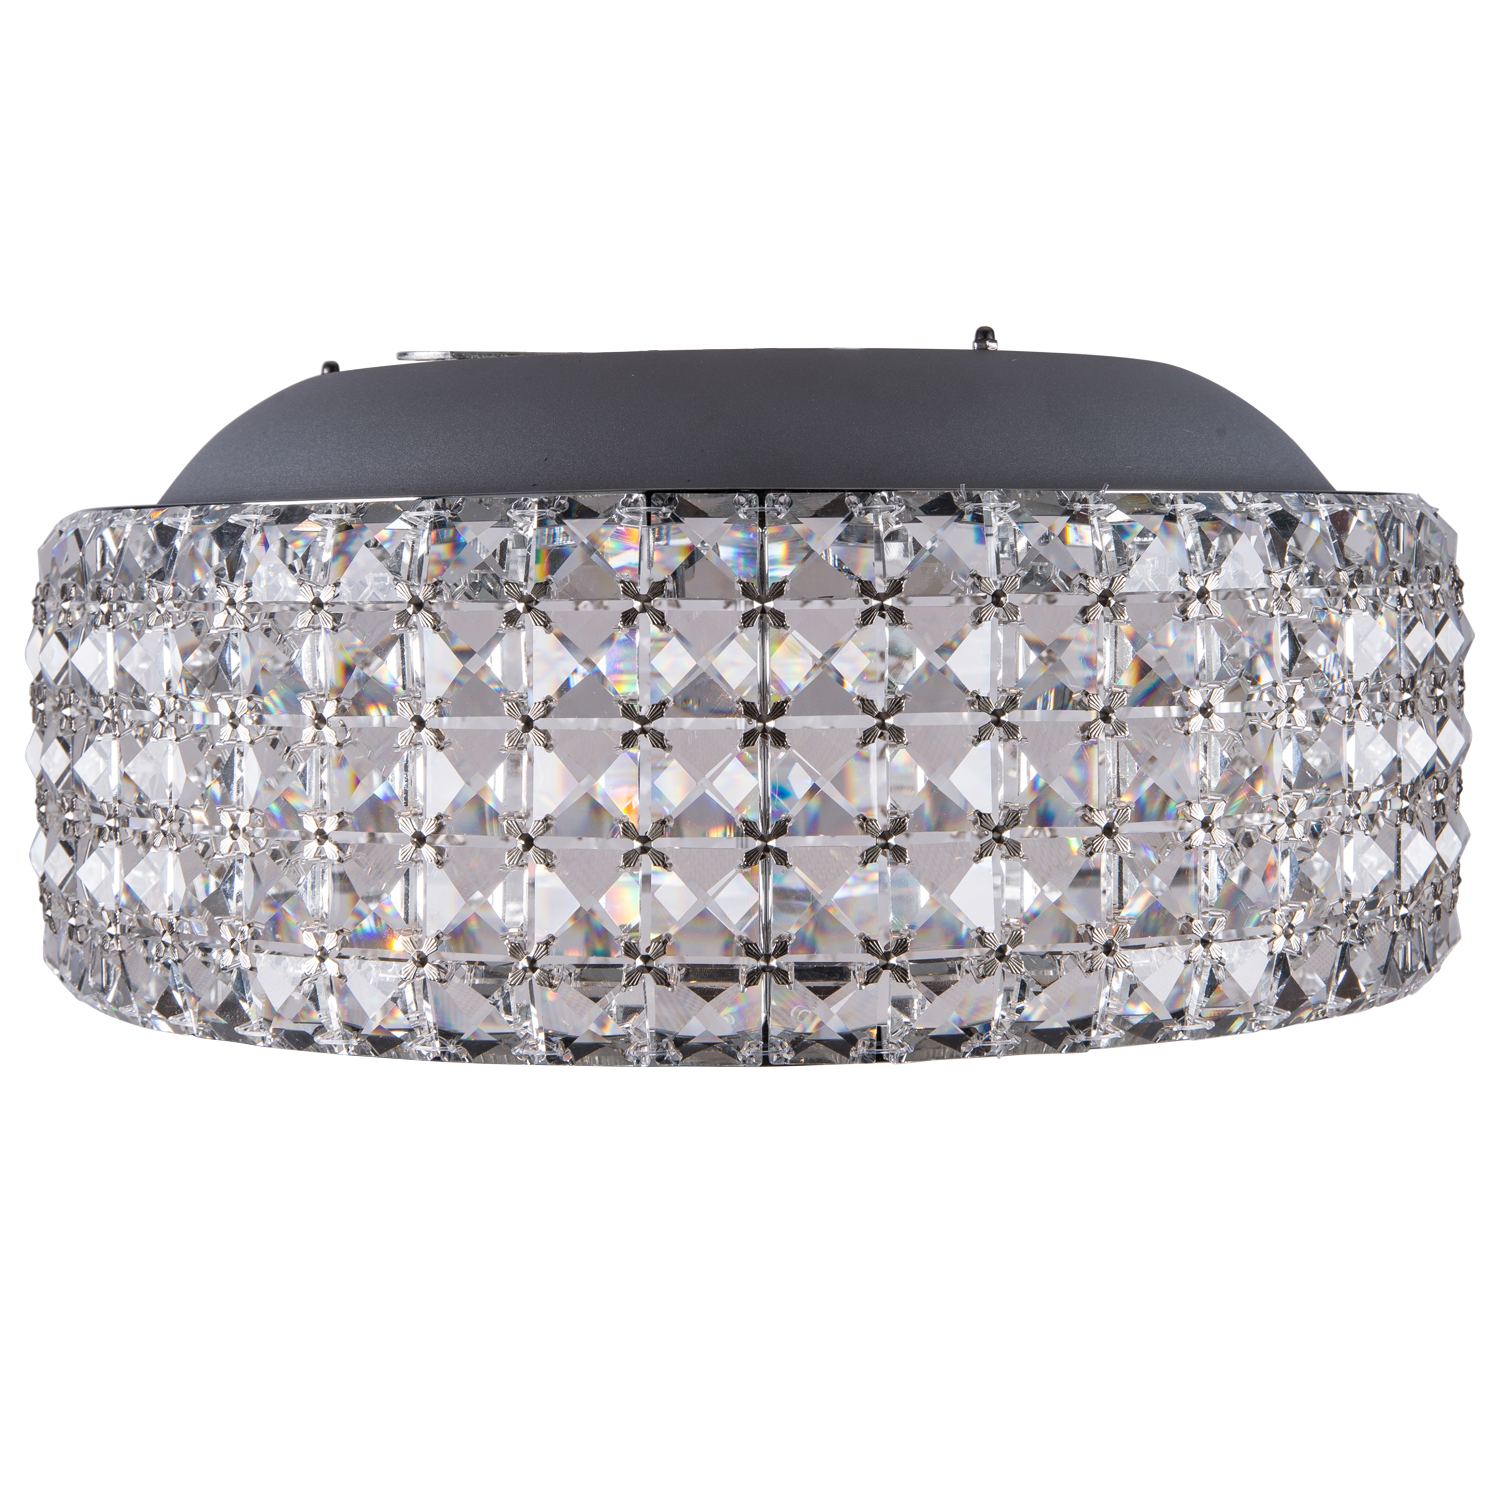 Joshua Marshal 700053 001 8 Light Flush Mount Light In